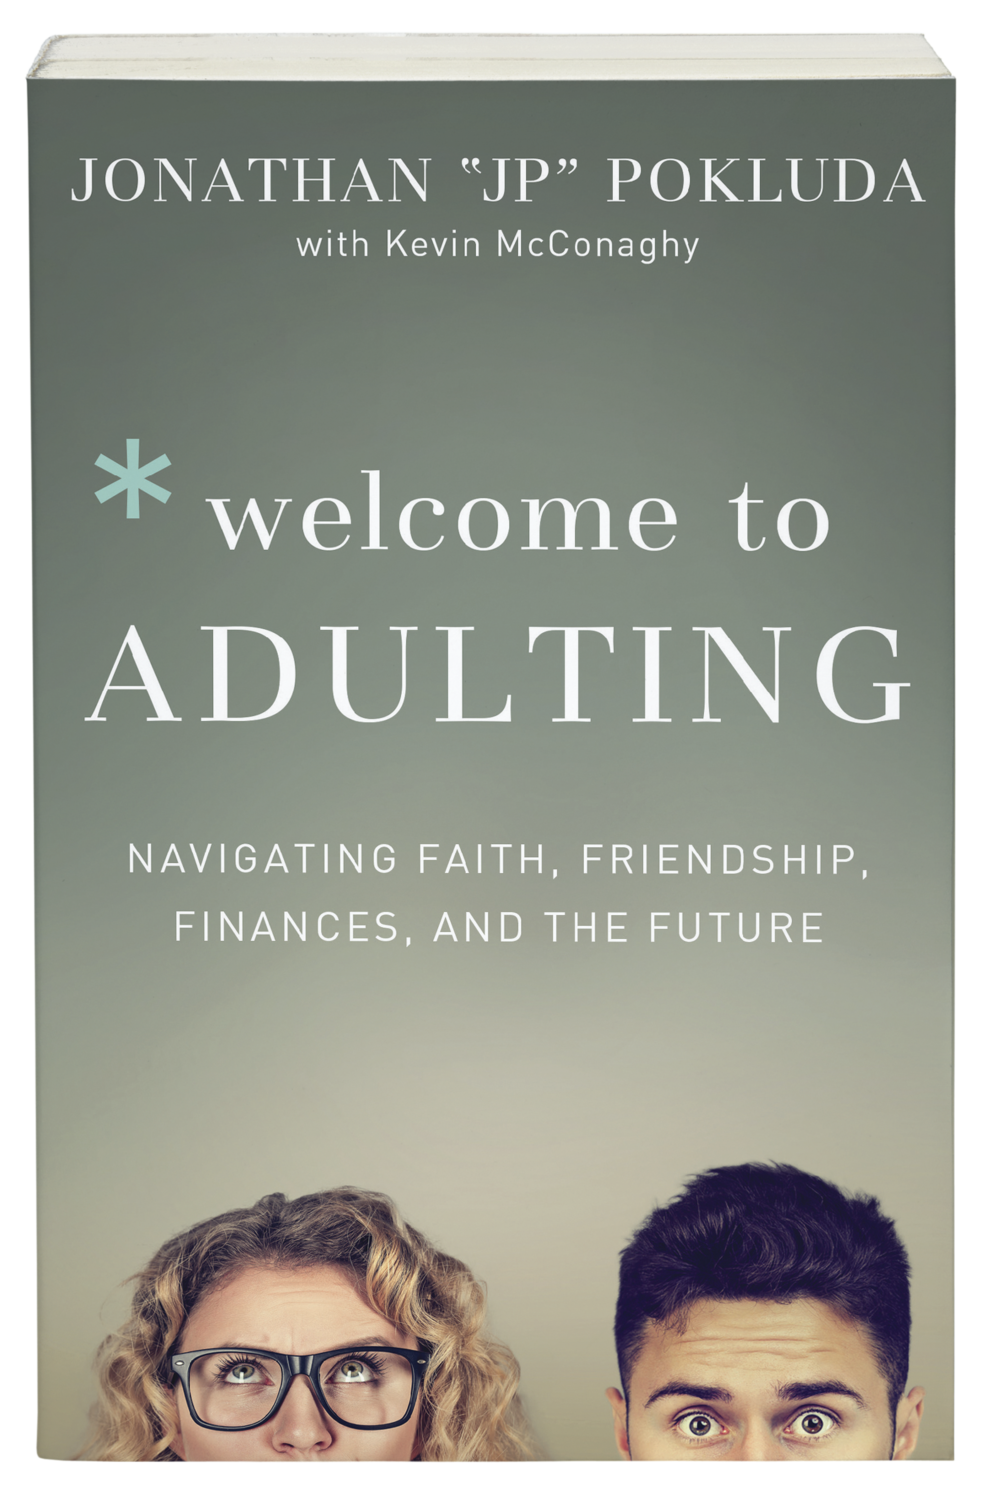 Pokluda_WelcometoAdulting_3Dalt2.png